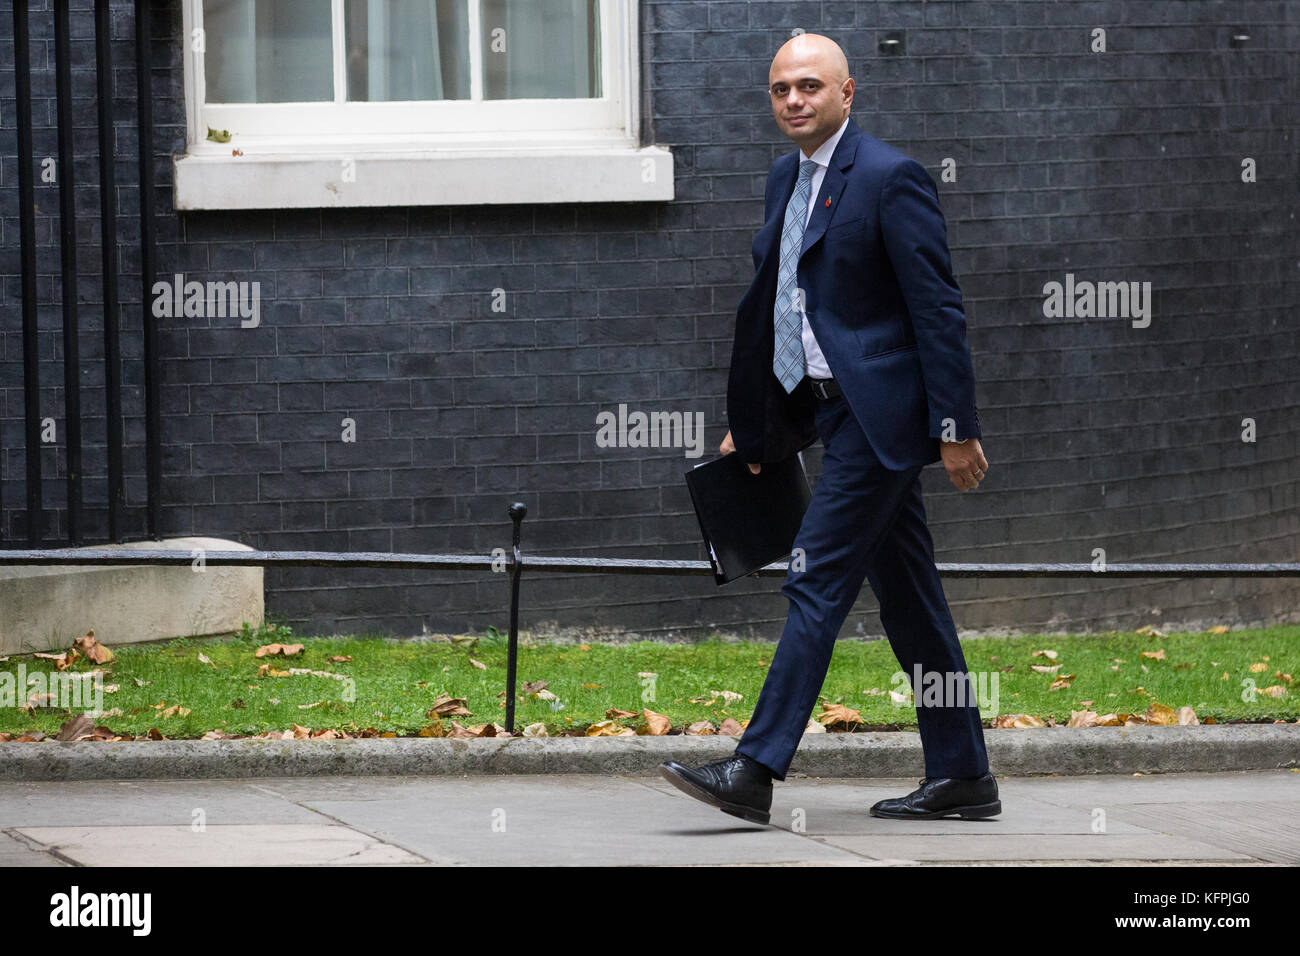 London, UK. 31st Oct, 2017. Sajid Javid MP, Secretary of State for Communities and Local Government, arrives at - Stock Image